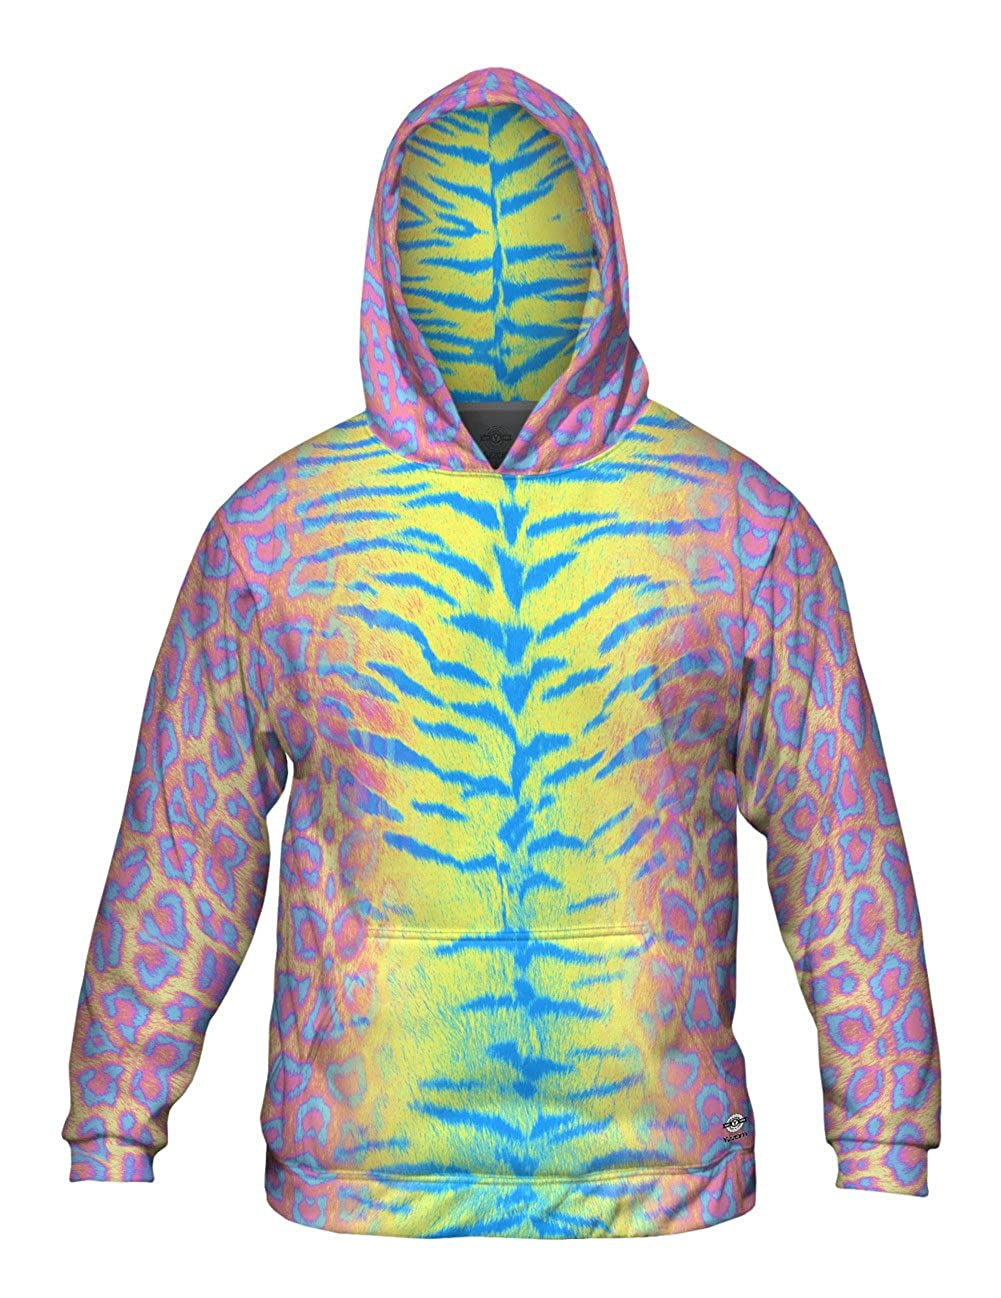 Tiger Leopard Skin Pink Yellow Blue Mens Hoodie Sweater Yizzam Allover Print